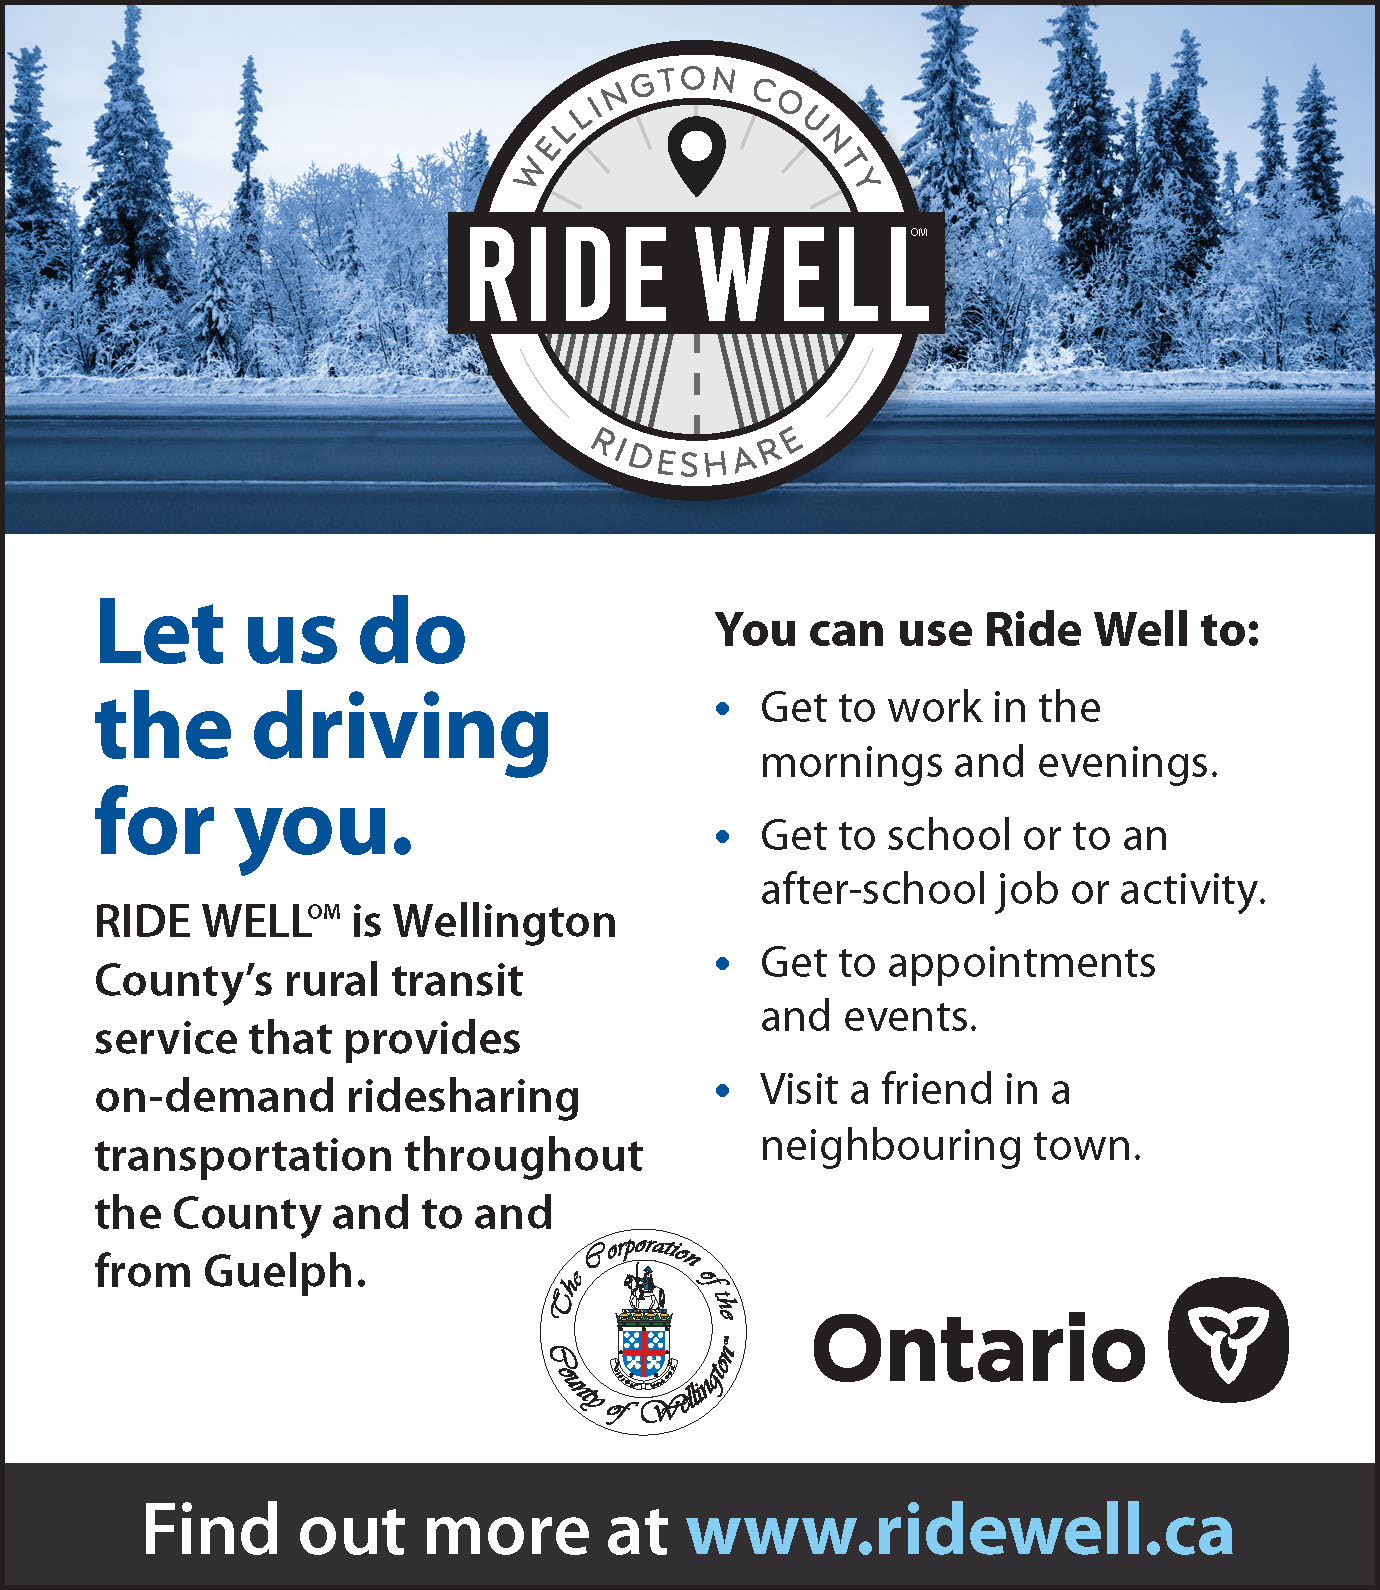 Ride Well Wellington county Rideshare